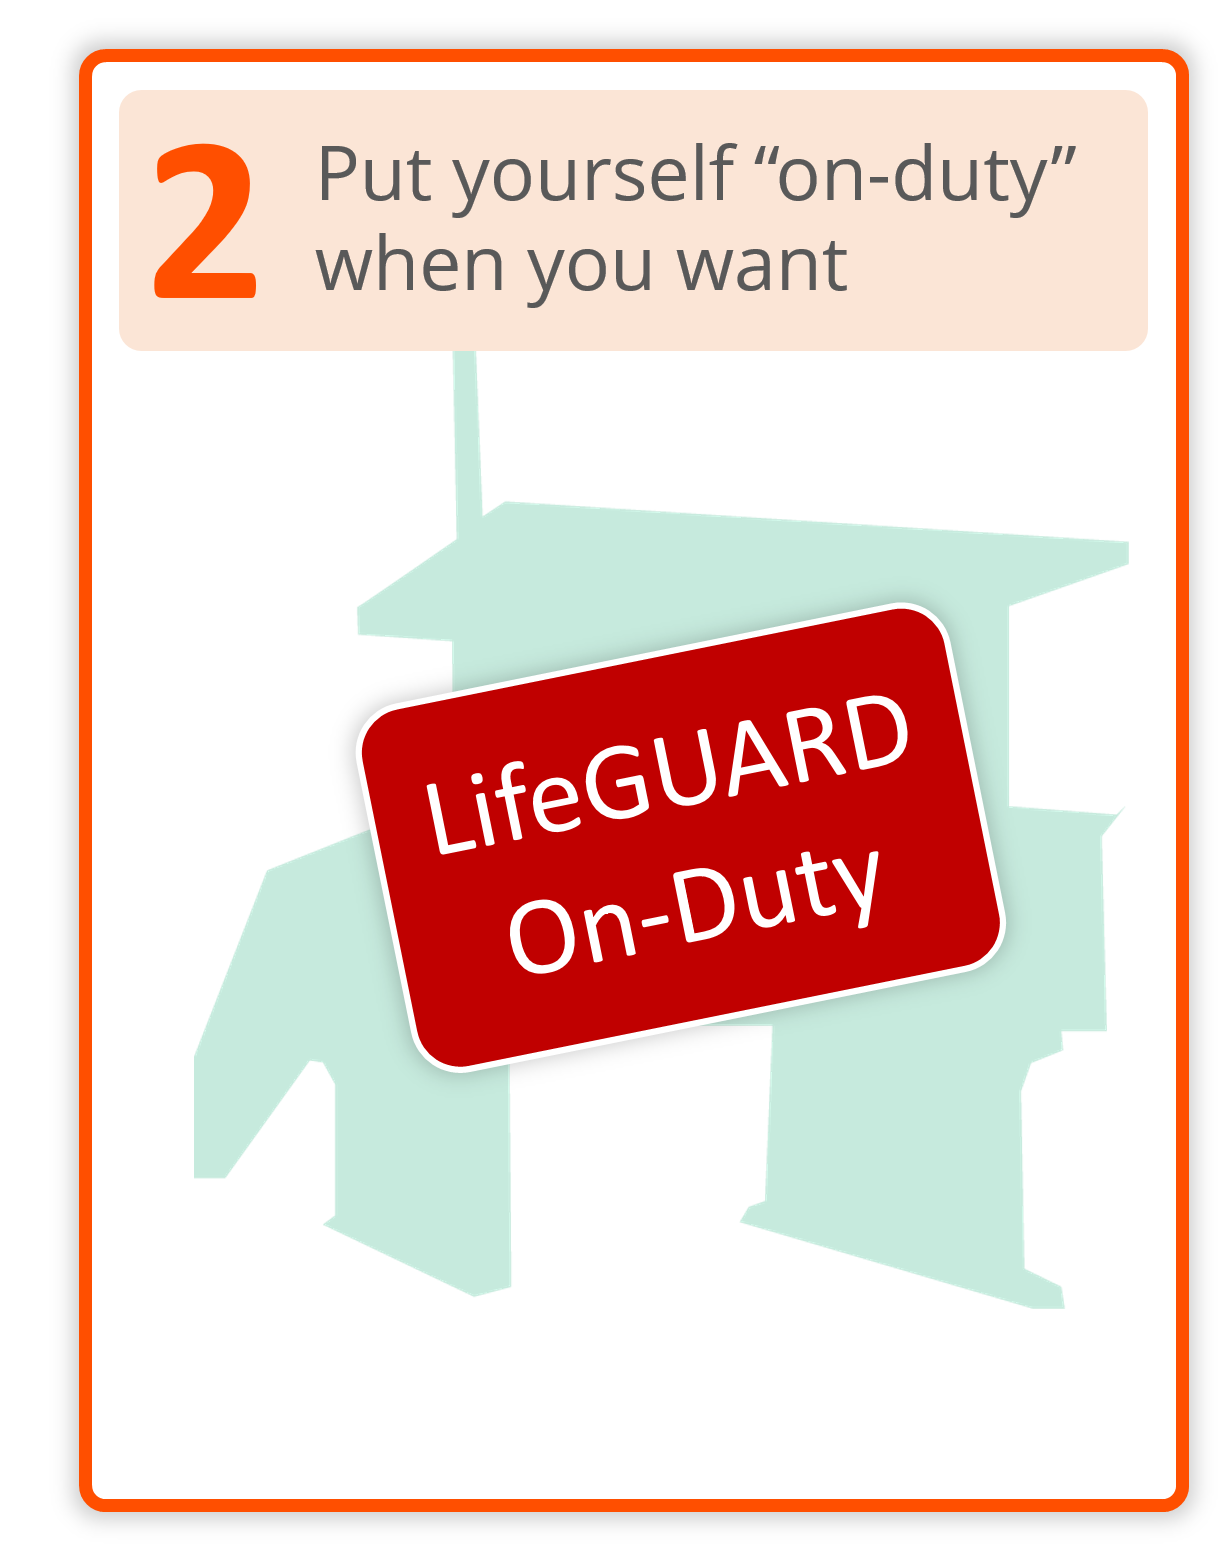 Live Coding Help Member LifeGUARD Step 2 - Put Yourself On-Duty When You Want